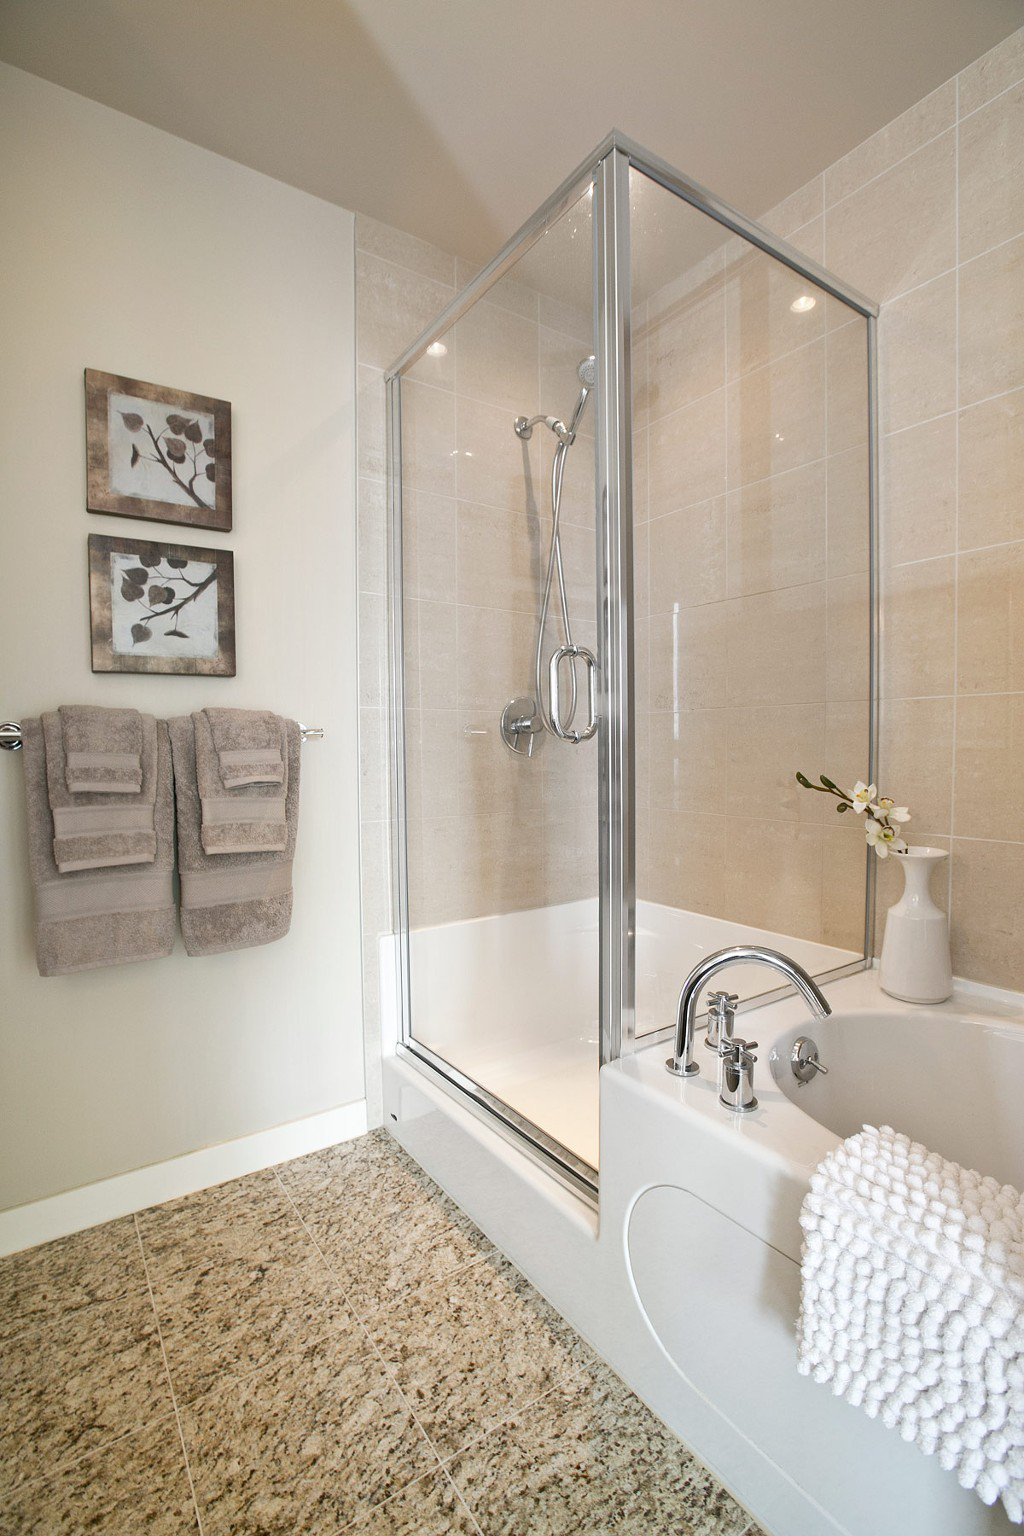 """Photo 33: Photos: 3202 583 BEACH Crescent in Vancouver: Yaletown Condo for sale in """"TWO PARKWEST"""" (Vancouver West)  : MLS®# V1008812"""